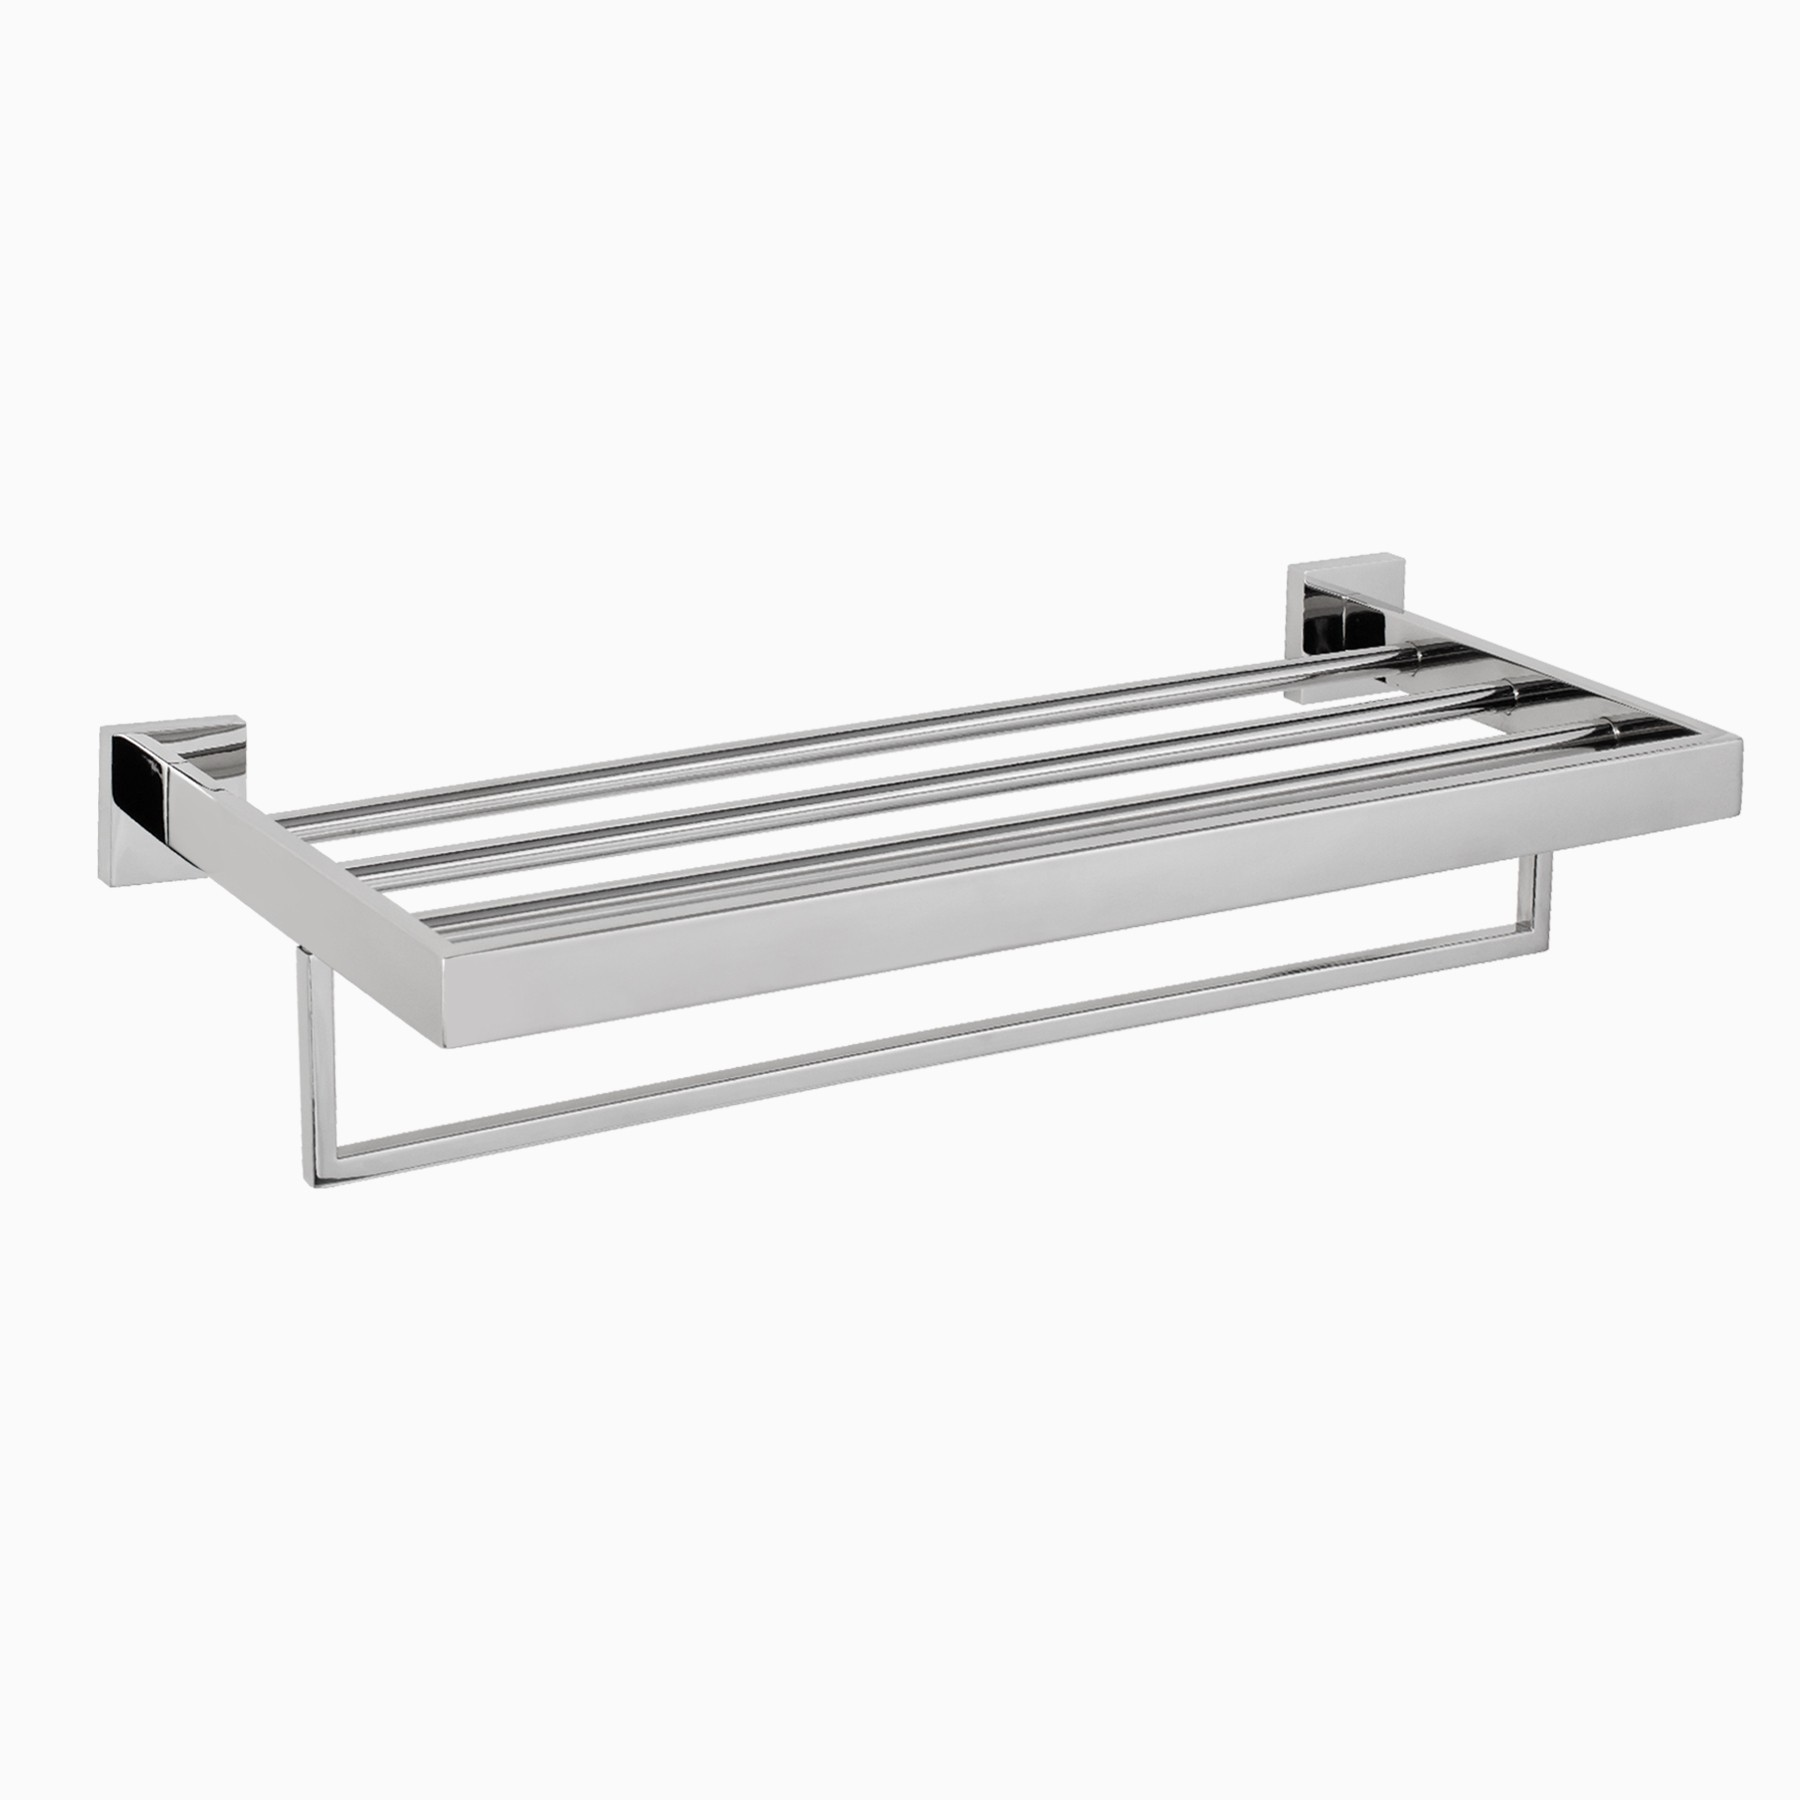 TriBeCa Stainless Steel Wall Mounted Towel Rack, Modern, 23-5/8\